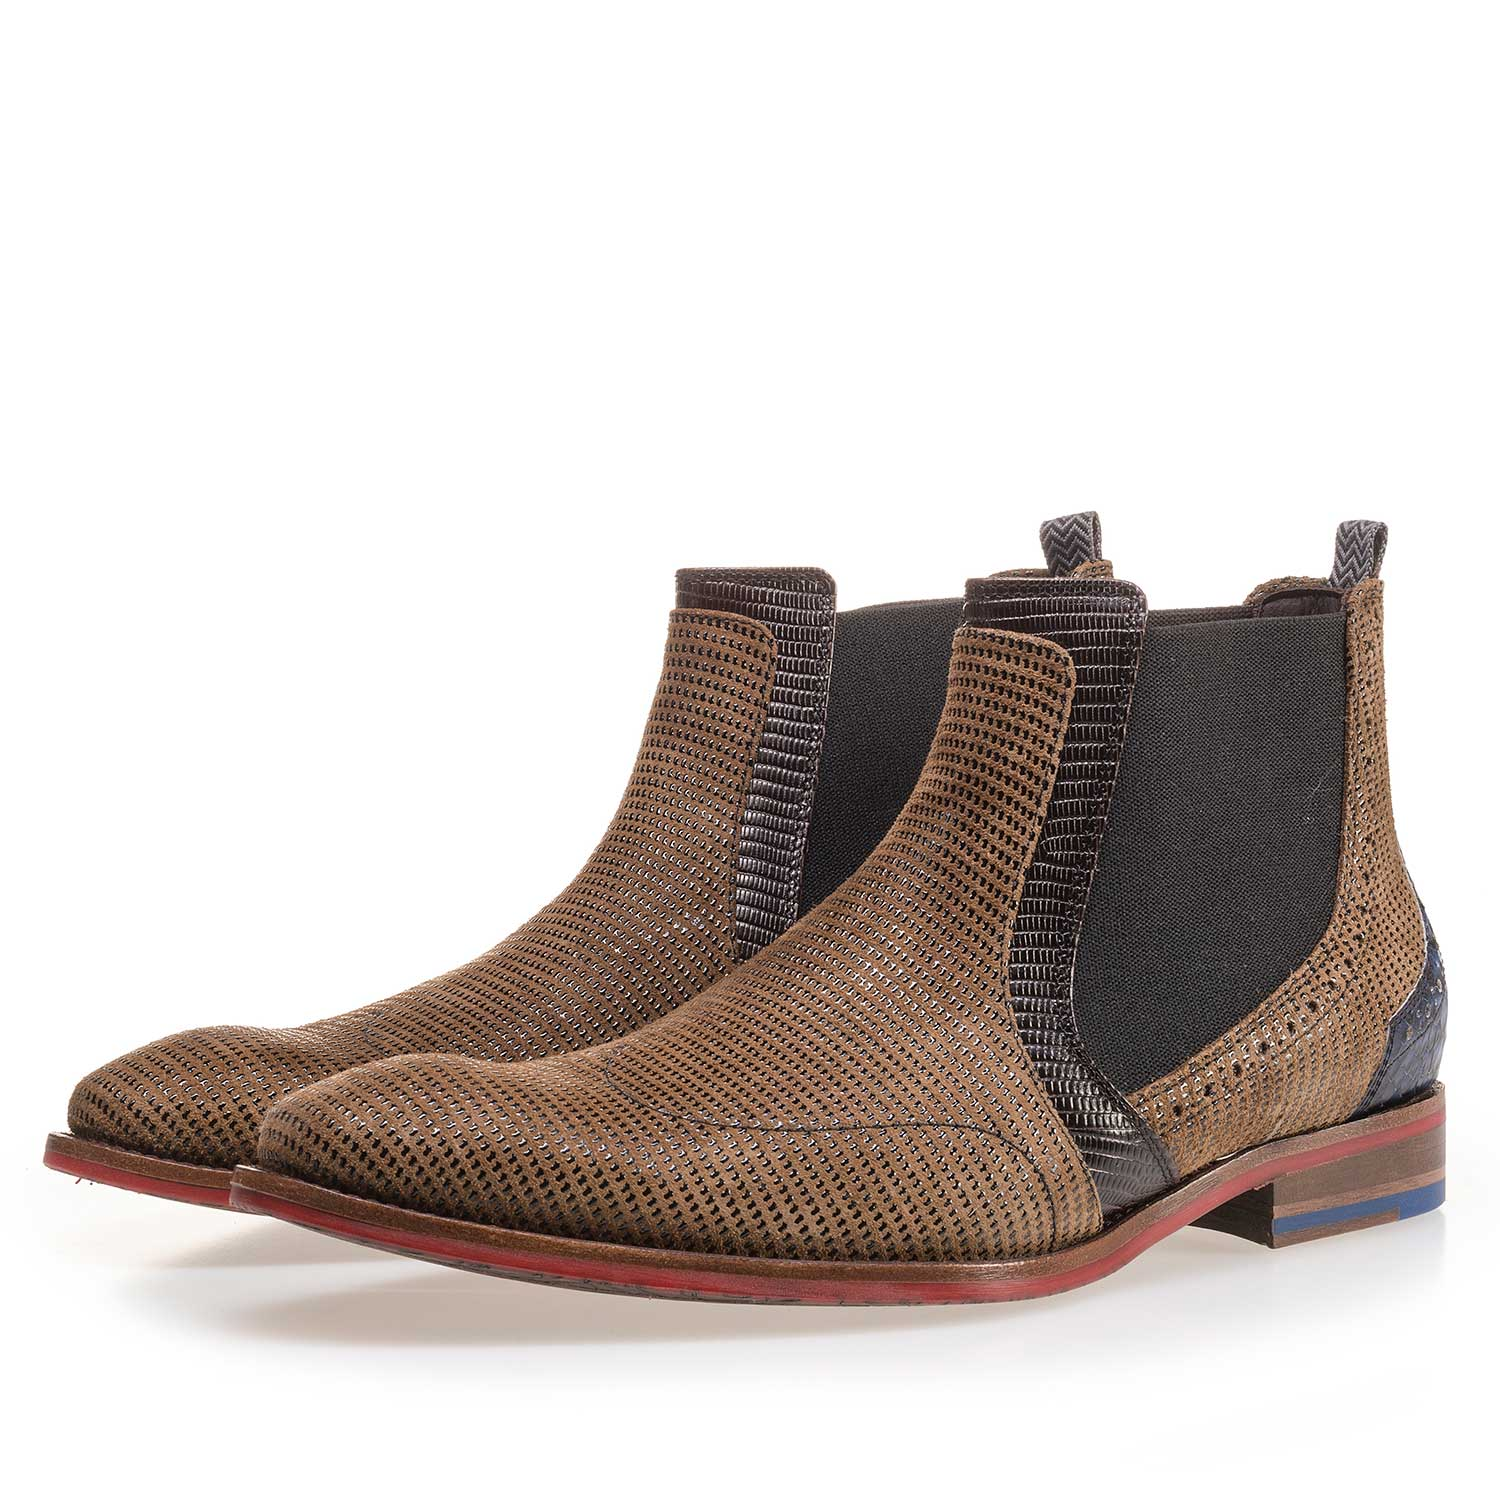 10455/01 - Camel-coloured Chelsea boot made of suede leather